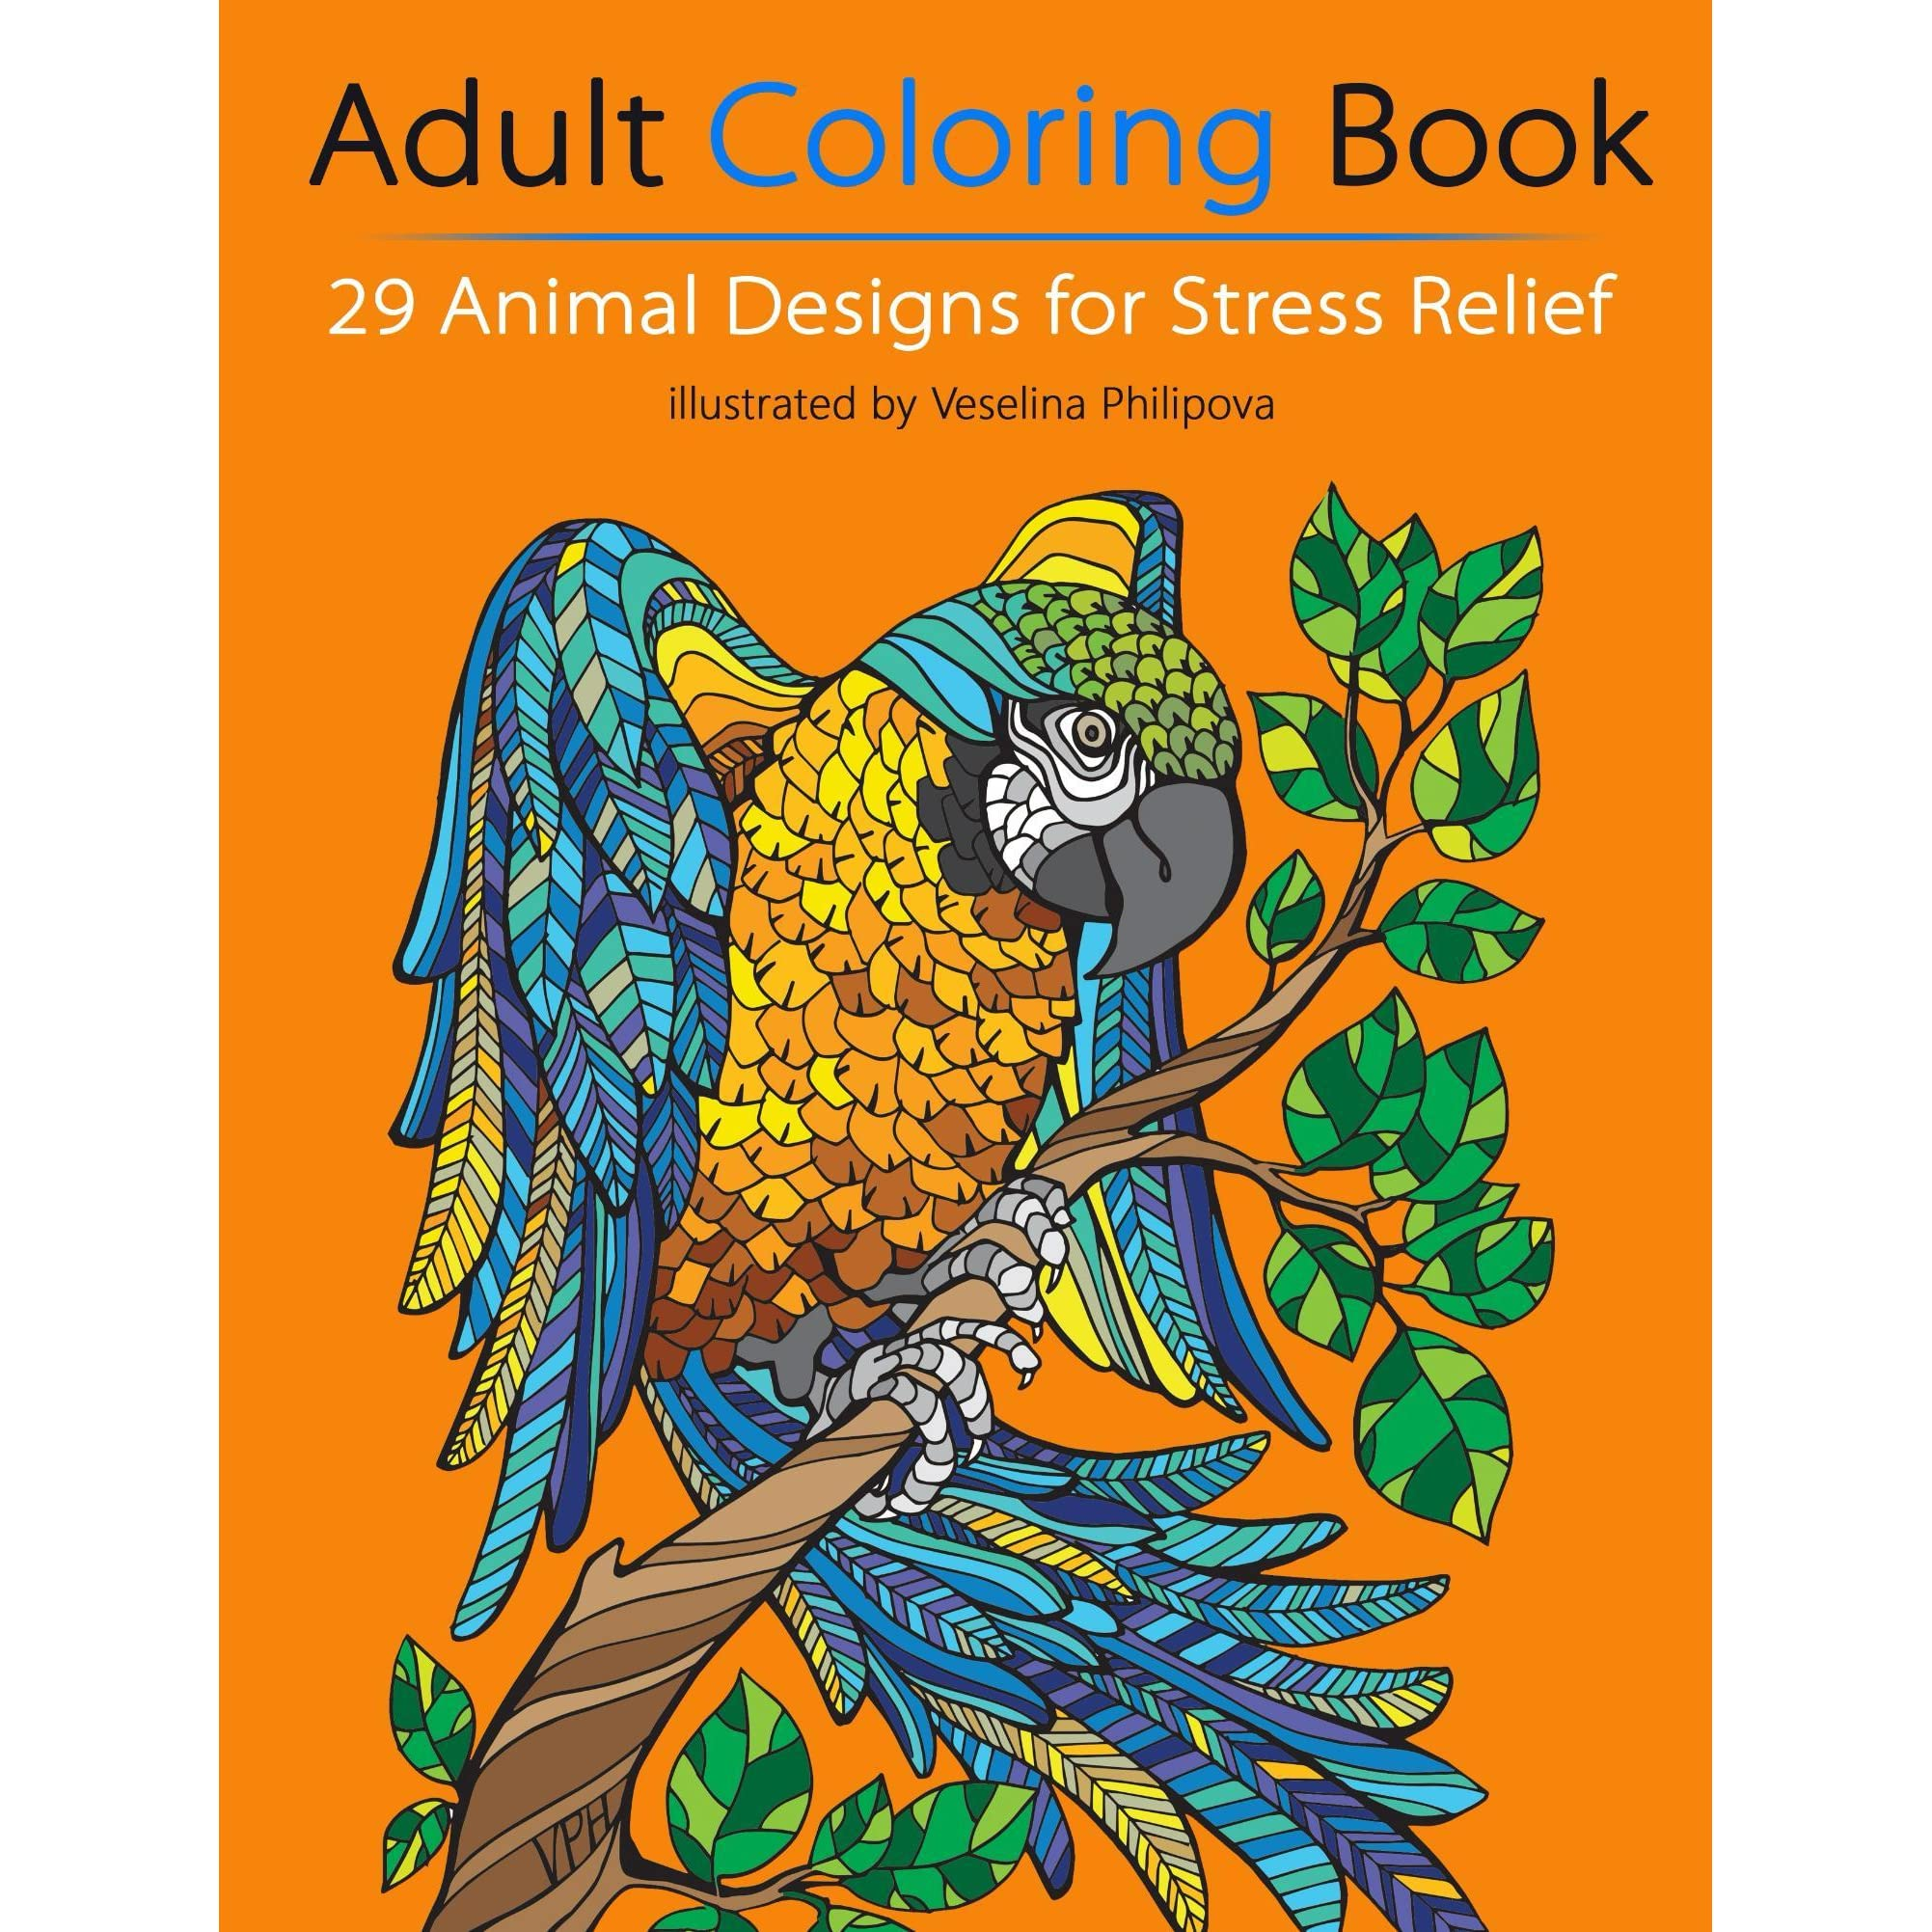 Book Giveaway For Adult Coloring Book 29 Animal Designs